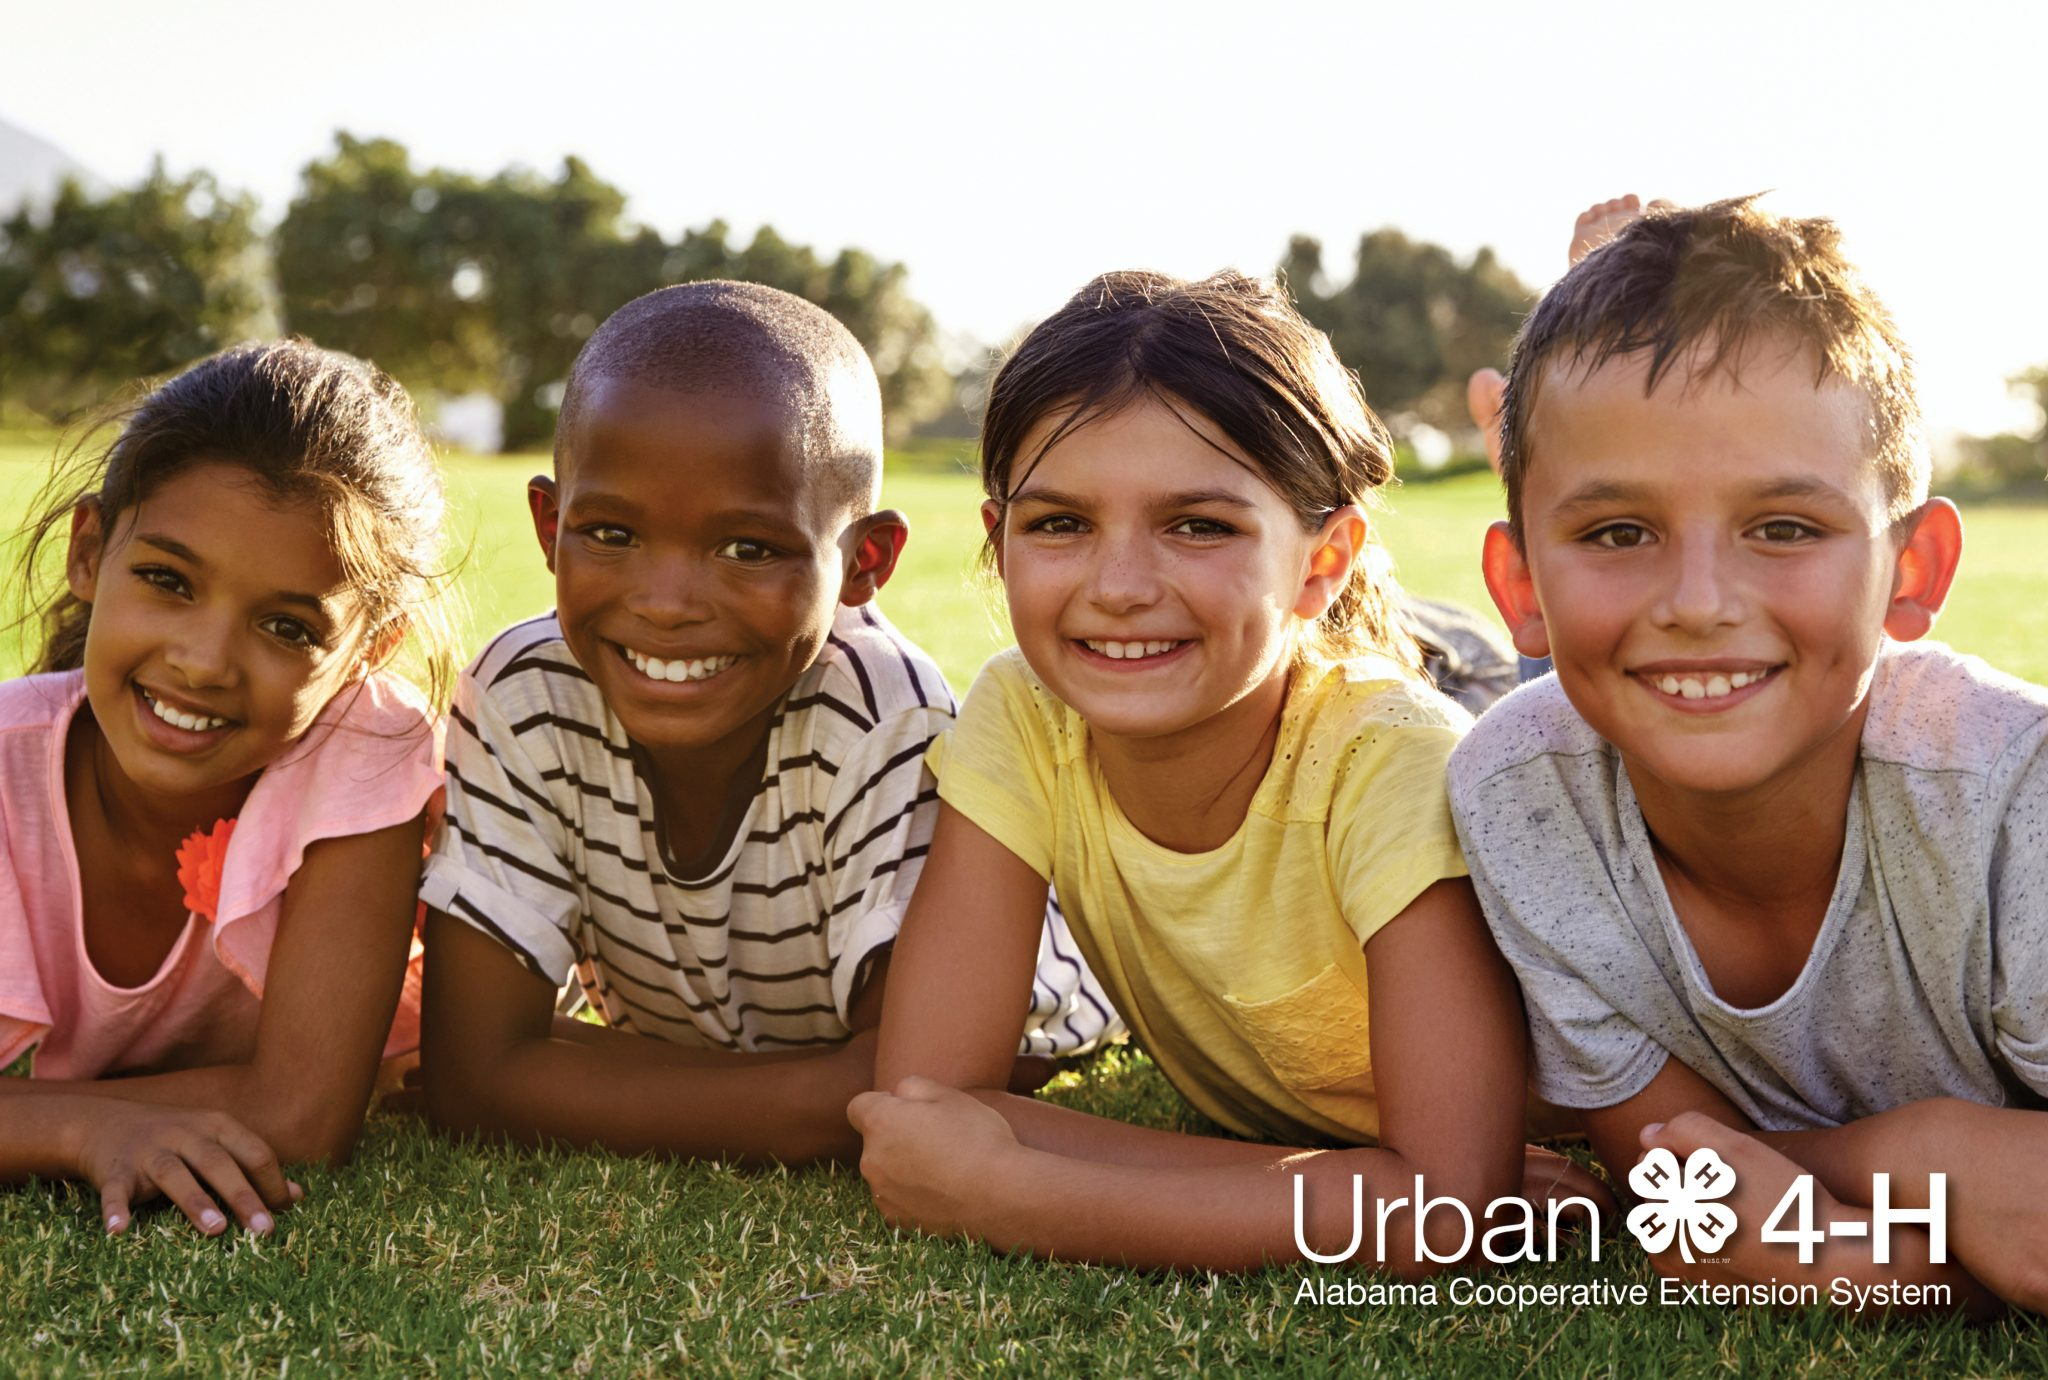 Four elementary aged children, multi-ethnic, lying on the grass smiling outside.